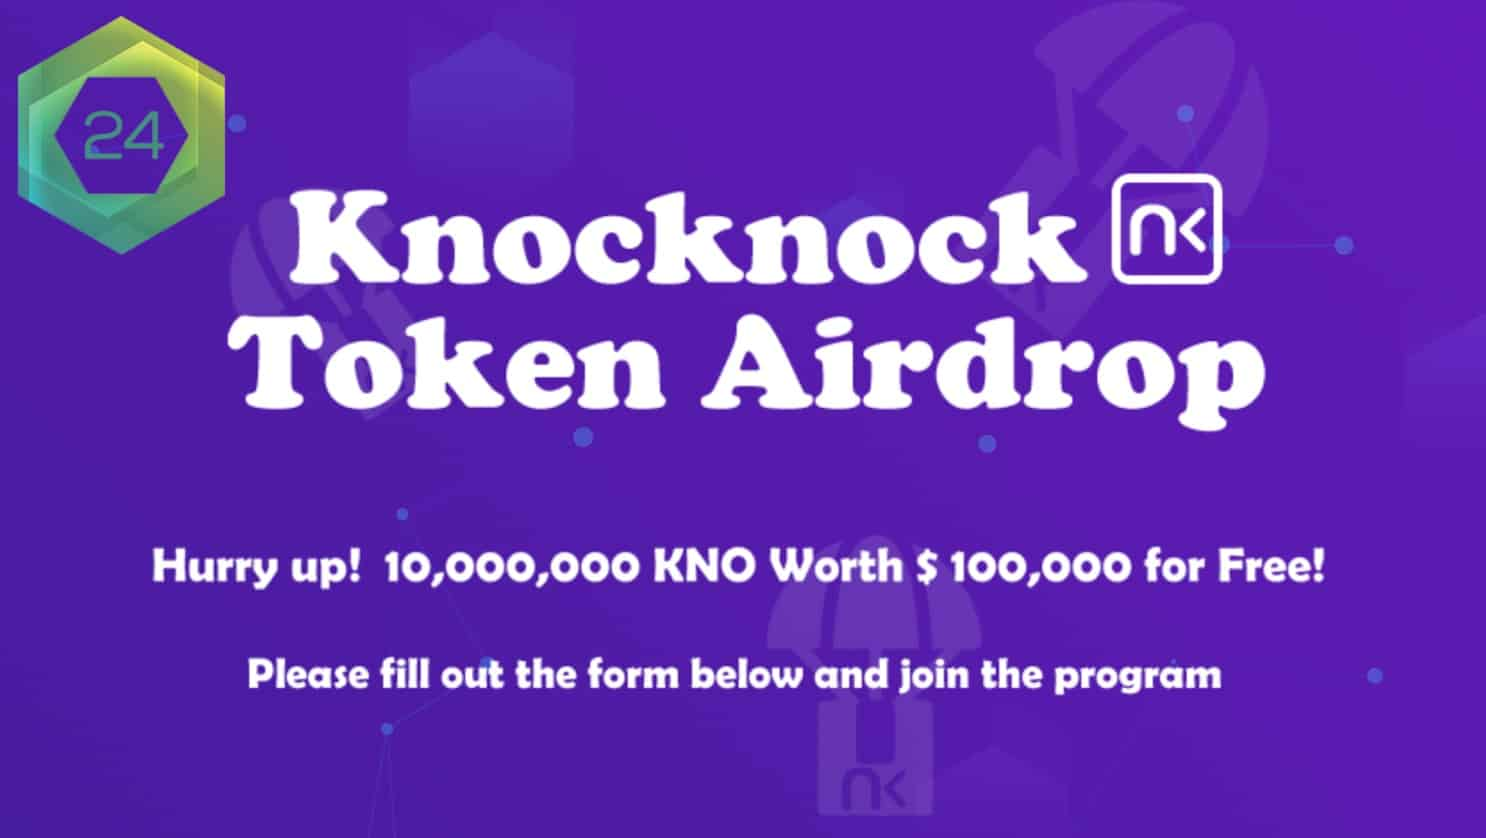 Knocknock Network Airdrop announcement